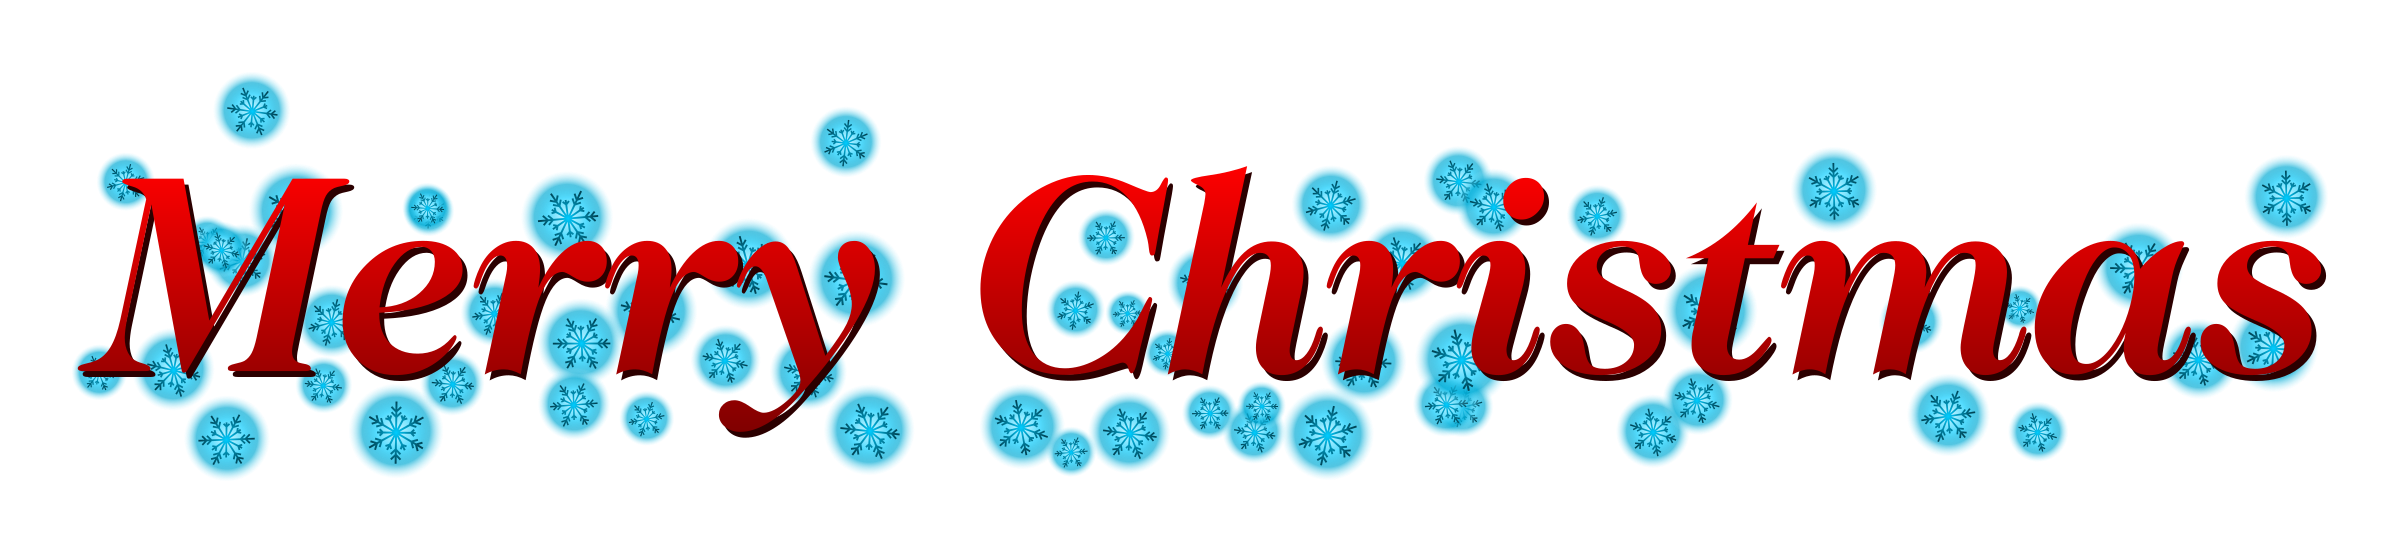 Merry christmas banner png. Icons free and downloads